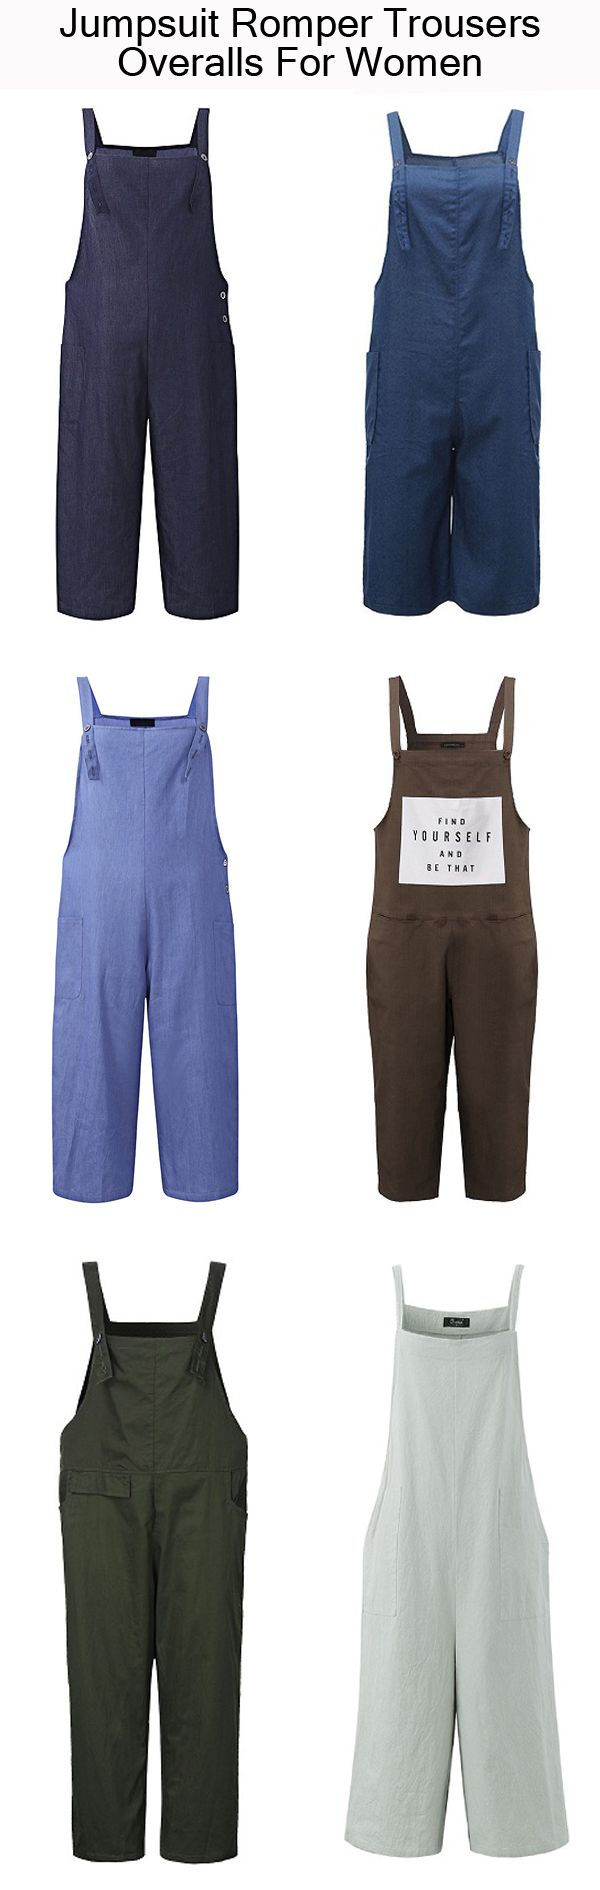 Casual Strap Pockets Jumpsuit Romper Trousers Overalls For Women summer&casual